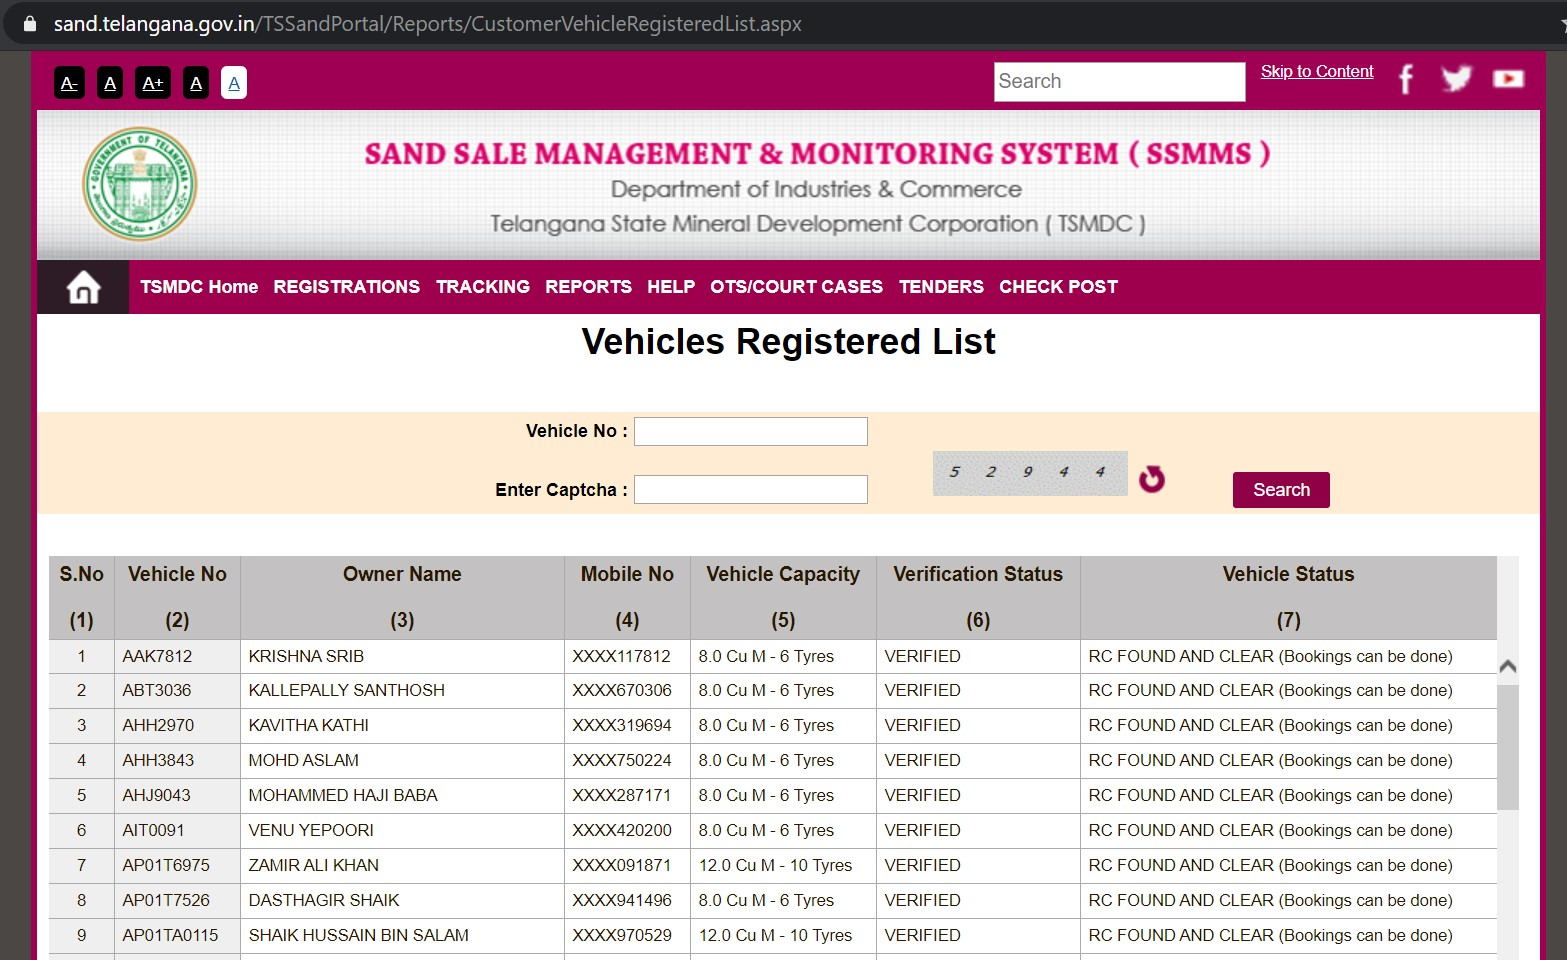 Vehicle Registered Customer Names